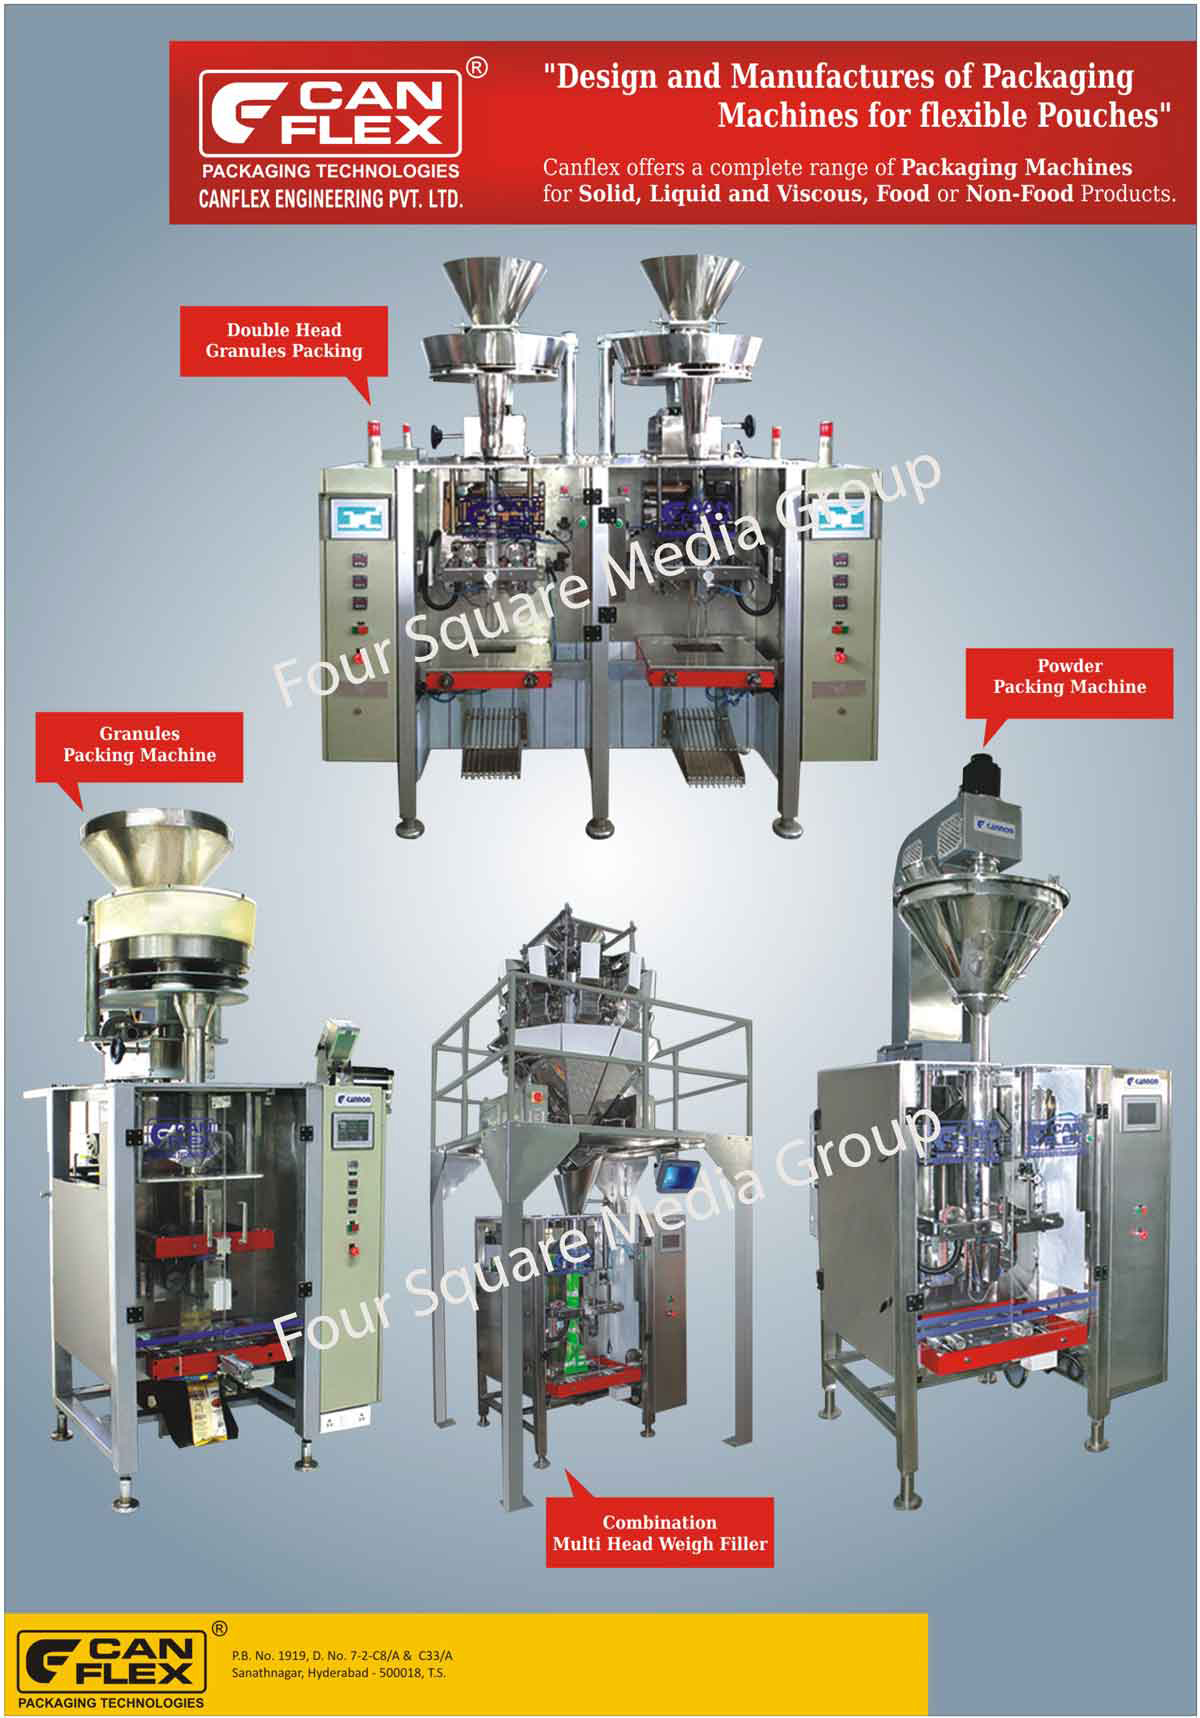 AFFS Packaging Machines, Mineral Water Pouch Packaging Machines, Butter Milk Pouch Packing Machines, Liquor Pouch Packing Machines, Viscous Product Pouch Packing Machines, Non Viscous Product Pouch Packing Machines, Granules Pouch Packing Machines, Pulses Pouch Packing Machines, Seeds Pouch Packing Machines, Powder Pouch Packing Machines, Spices Pouch Packing Machines, Atta Pouch Packing Machines, Petroleum Pouch Packing Machines, Flat Conveyor, Cleated Belt Conveyor, Masala Pouch Packing Machines, Paste Pouch Packing Machines, Alcohol Pouch Packing Machines, Juice Pouch Packing Machines, Combination Multi Head Weigh Filler, Beverage Pouch Packing Machines, Granule Packing Machine, Weigh Filler Machine